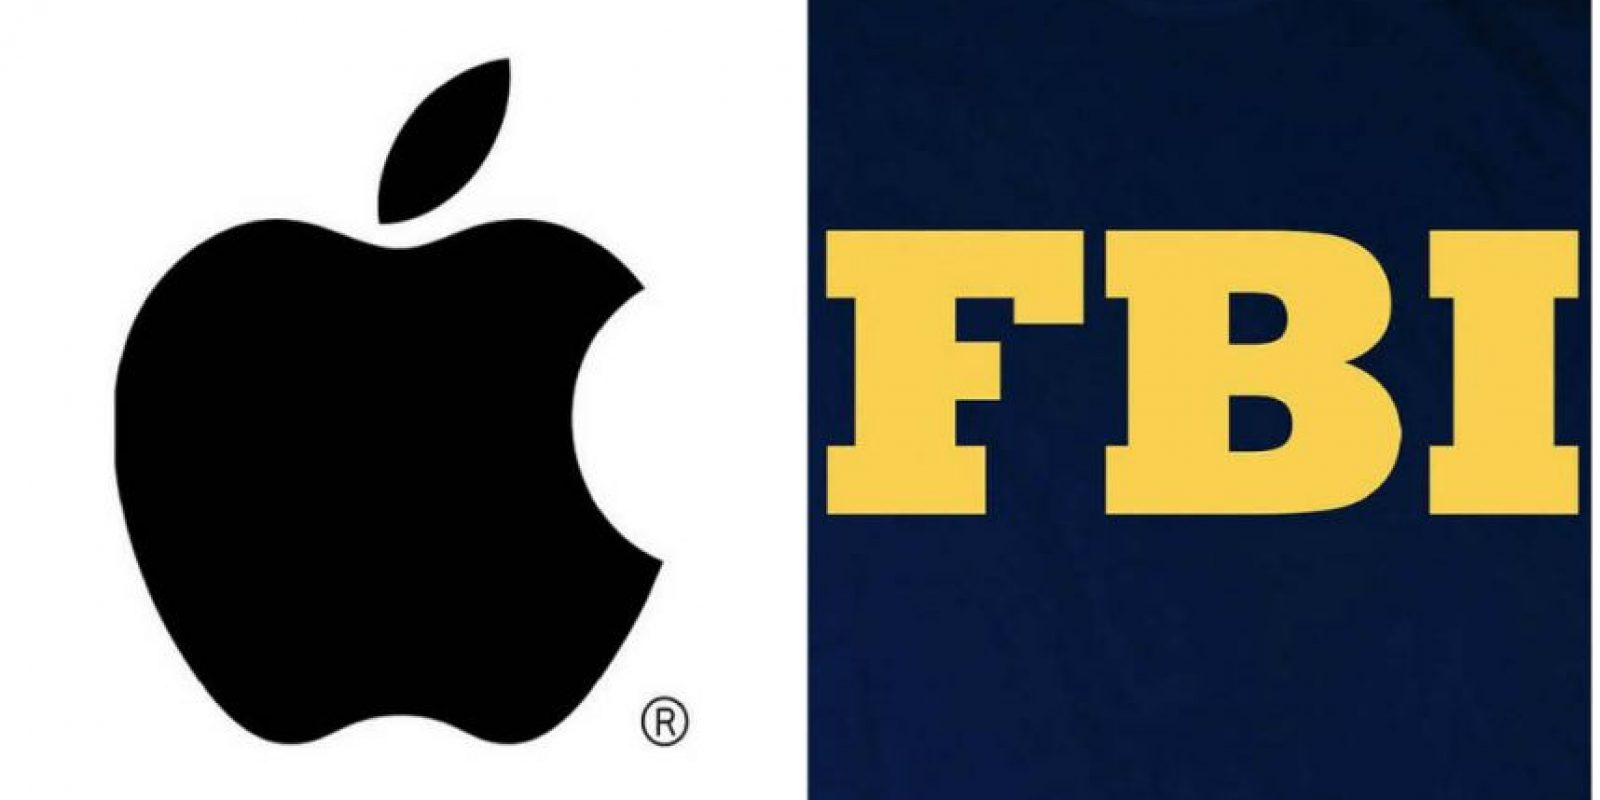 El FBI mantuvo una pelea legal de semanas con Apple. Foto: Apple/FBI